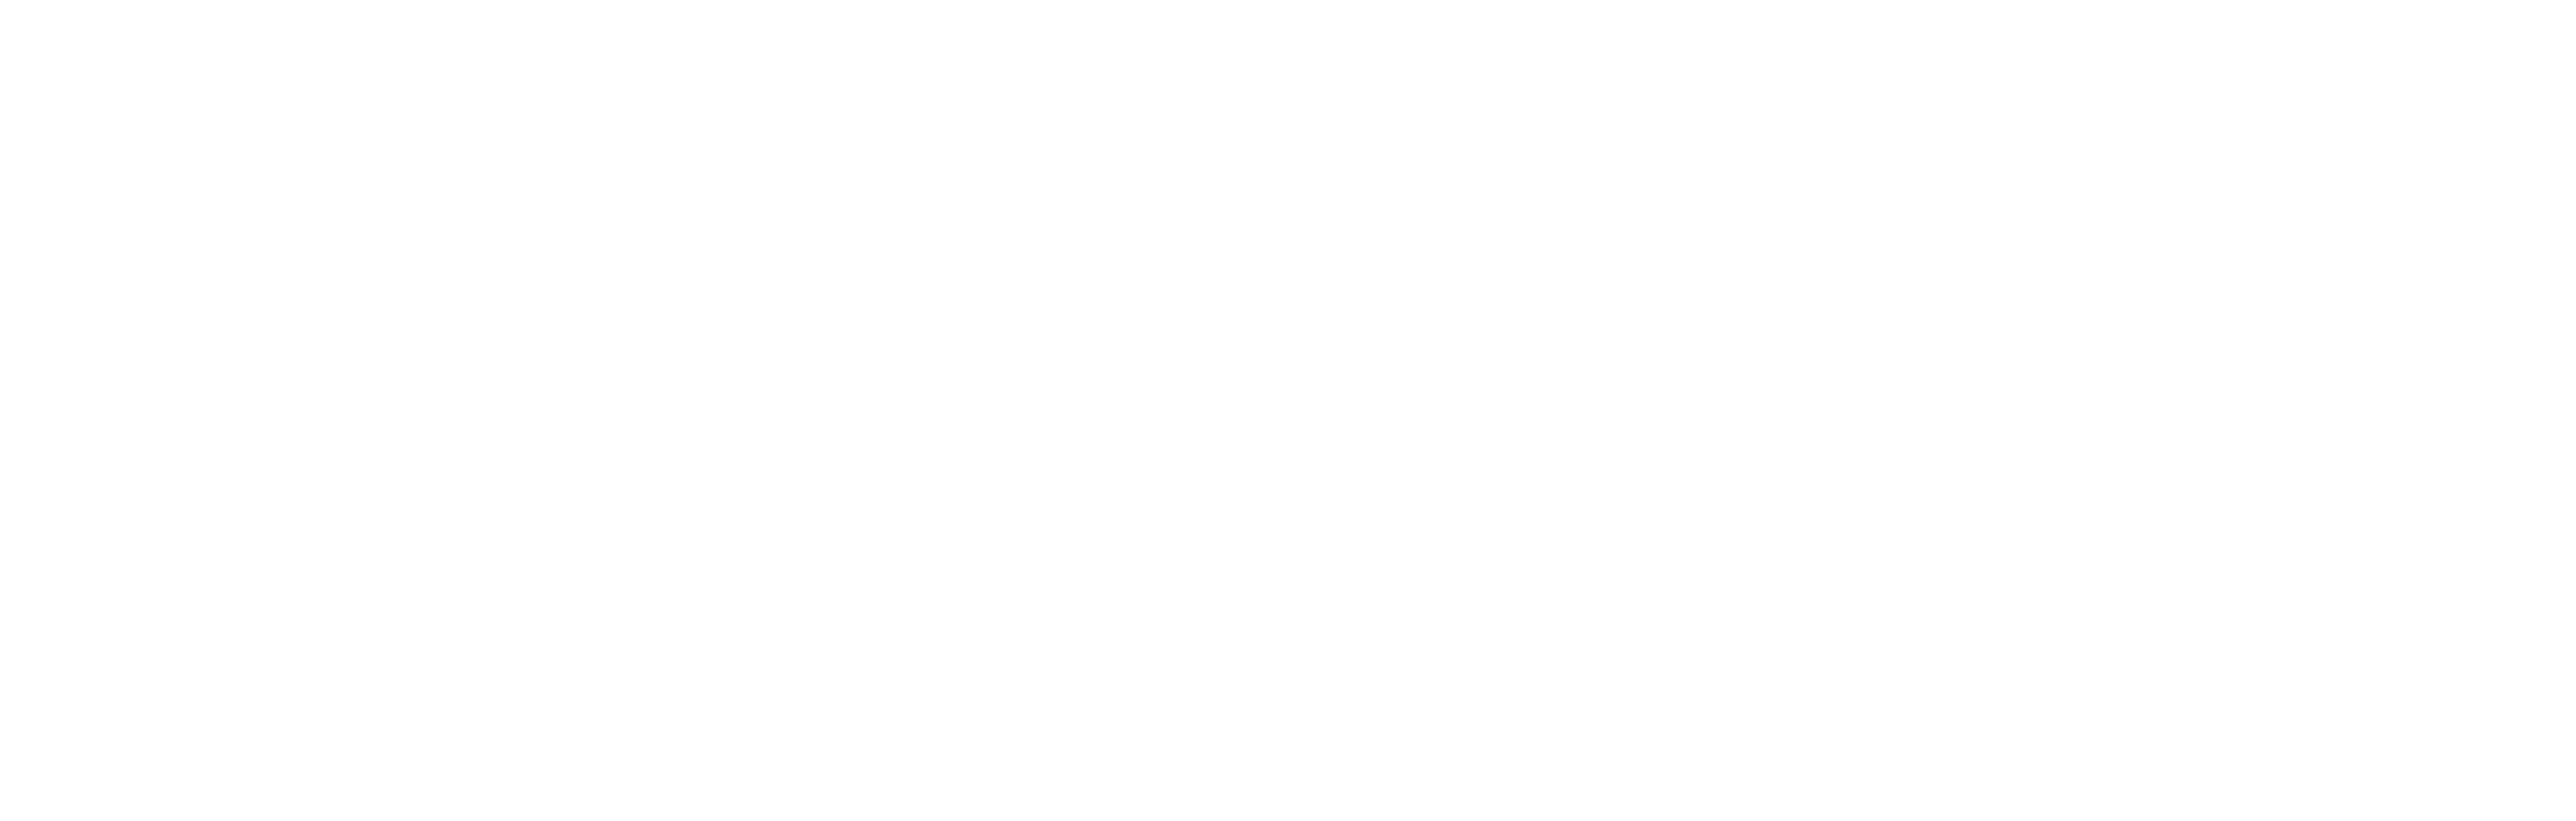 Top Content Agency